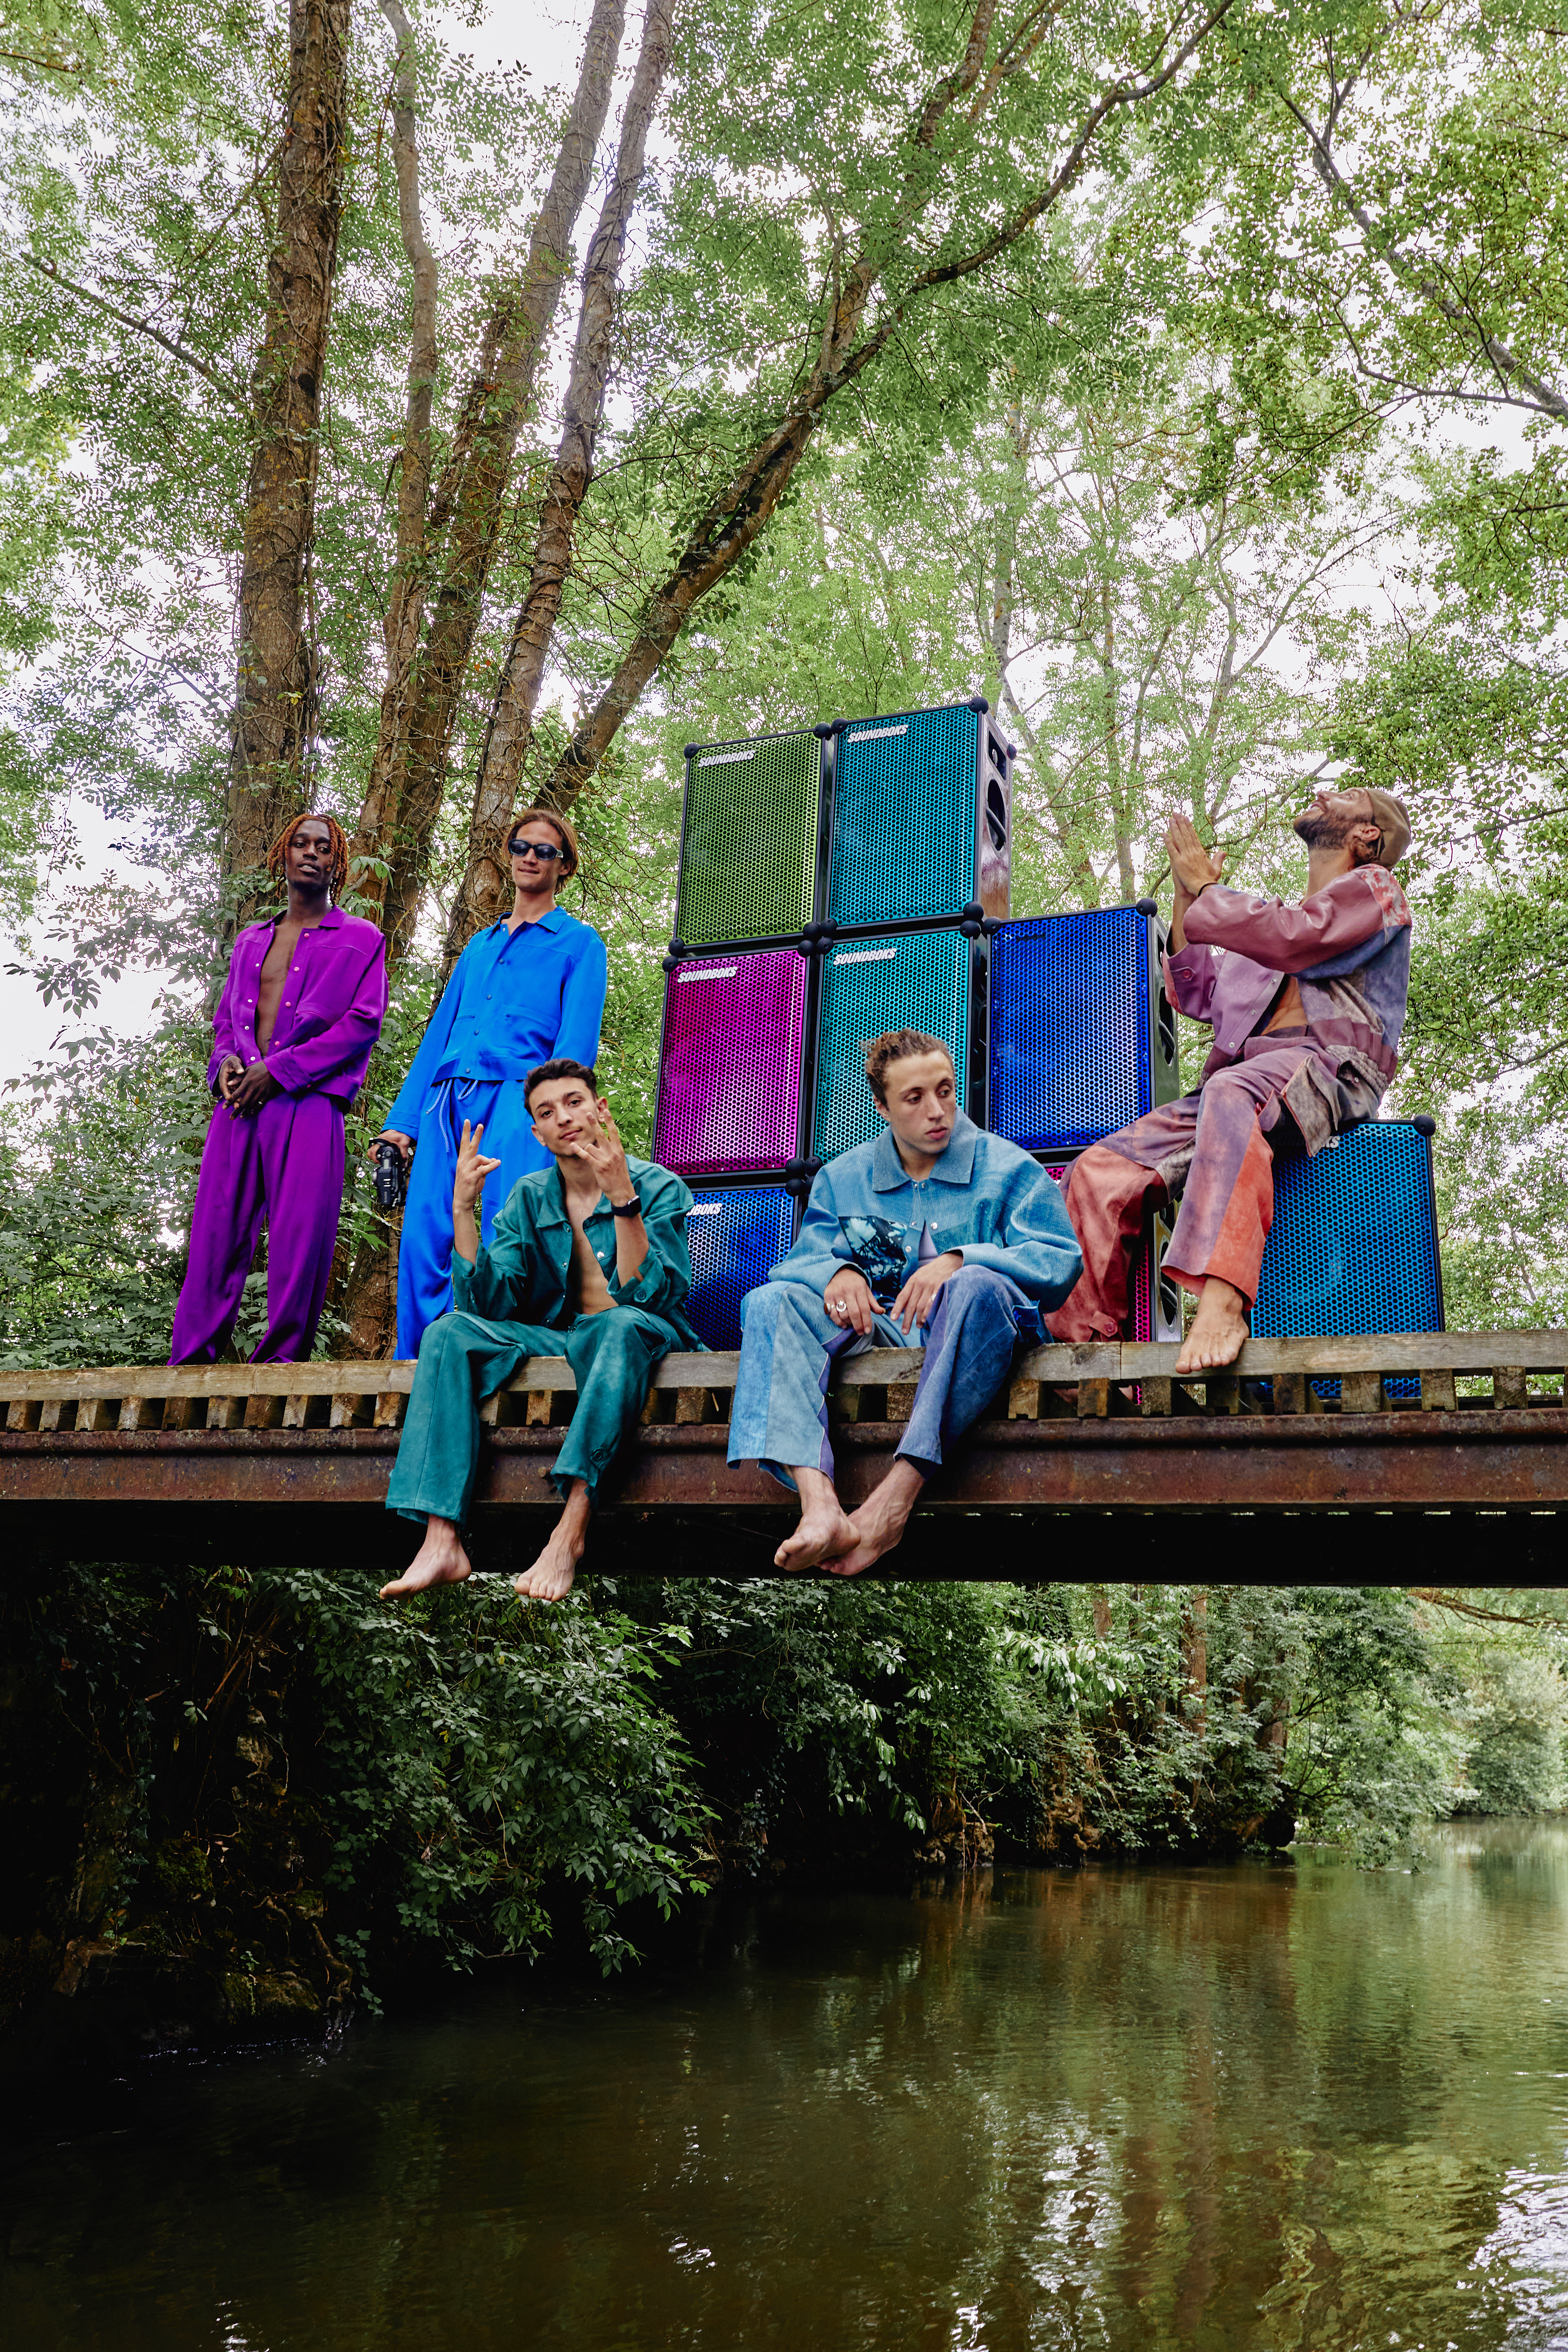 people sitting on a bridge with a bunch of speakers in various colors